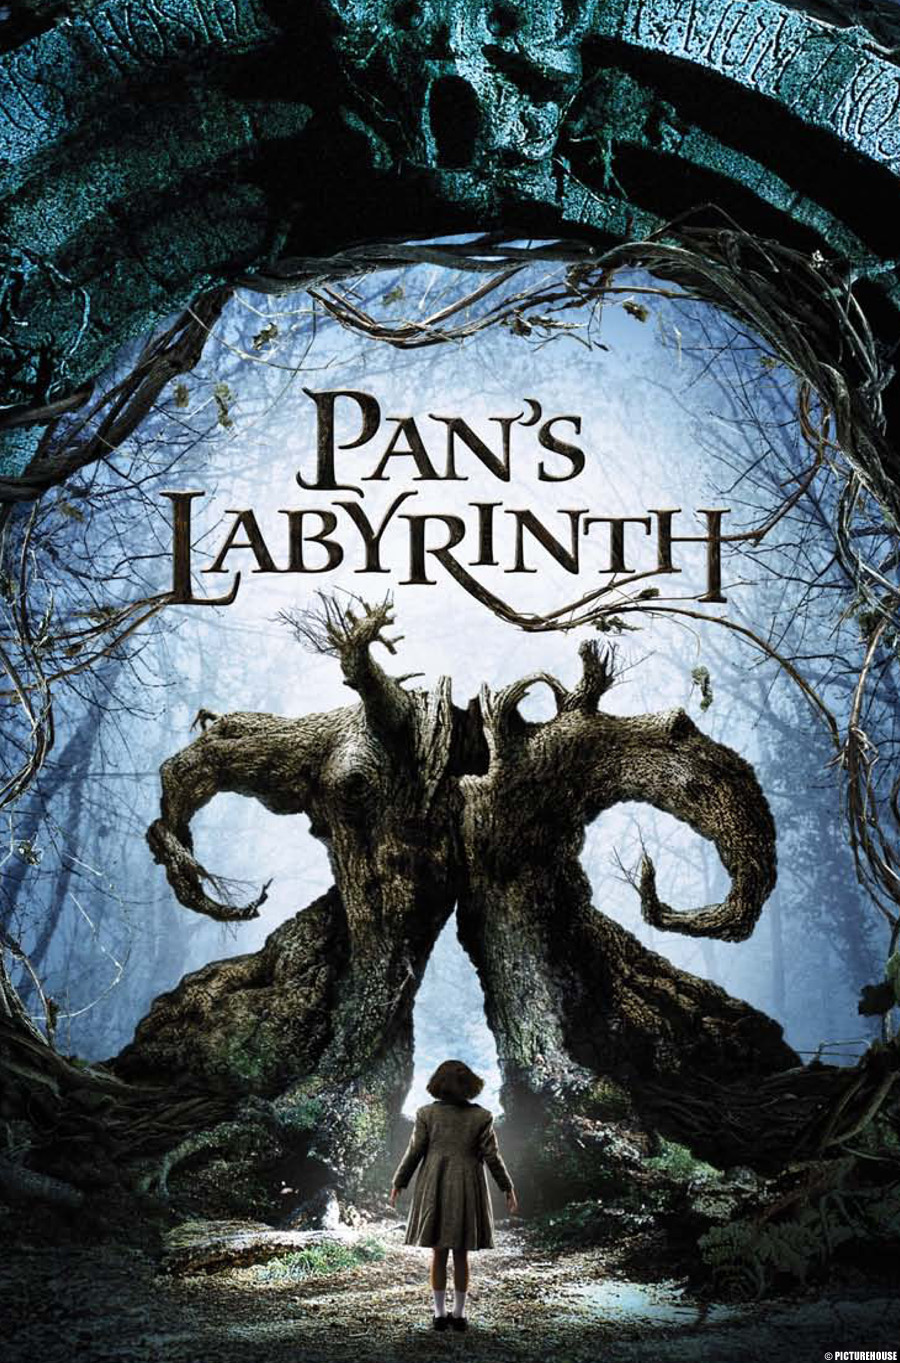 Pan's Labyrinth. Guillermo Del Toro. 2006